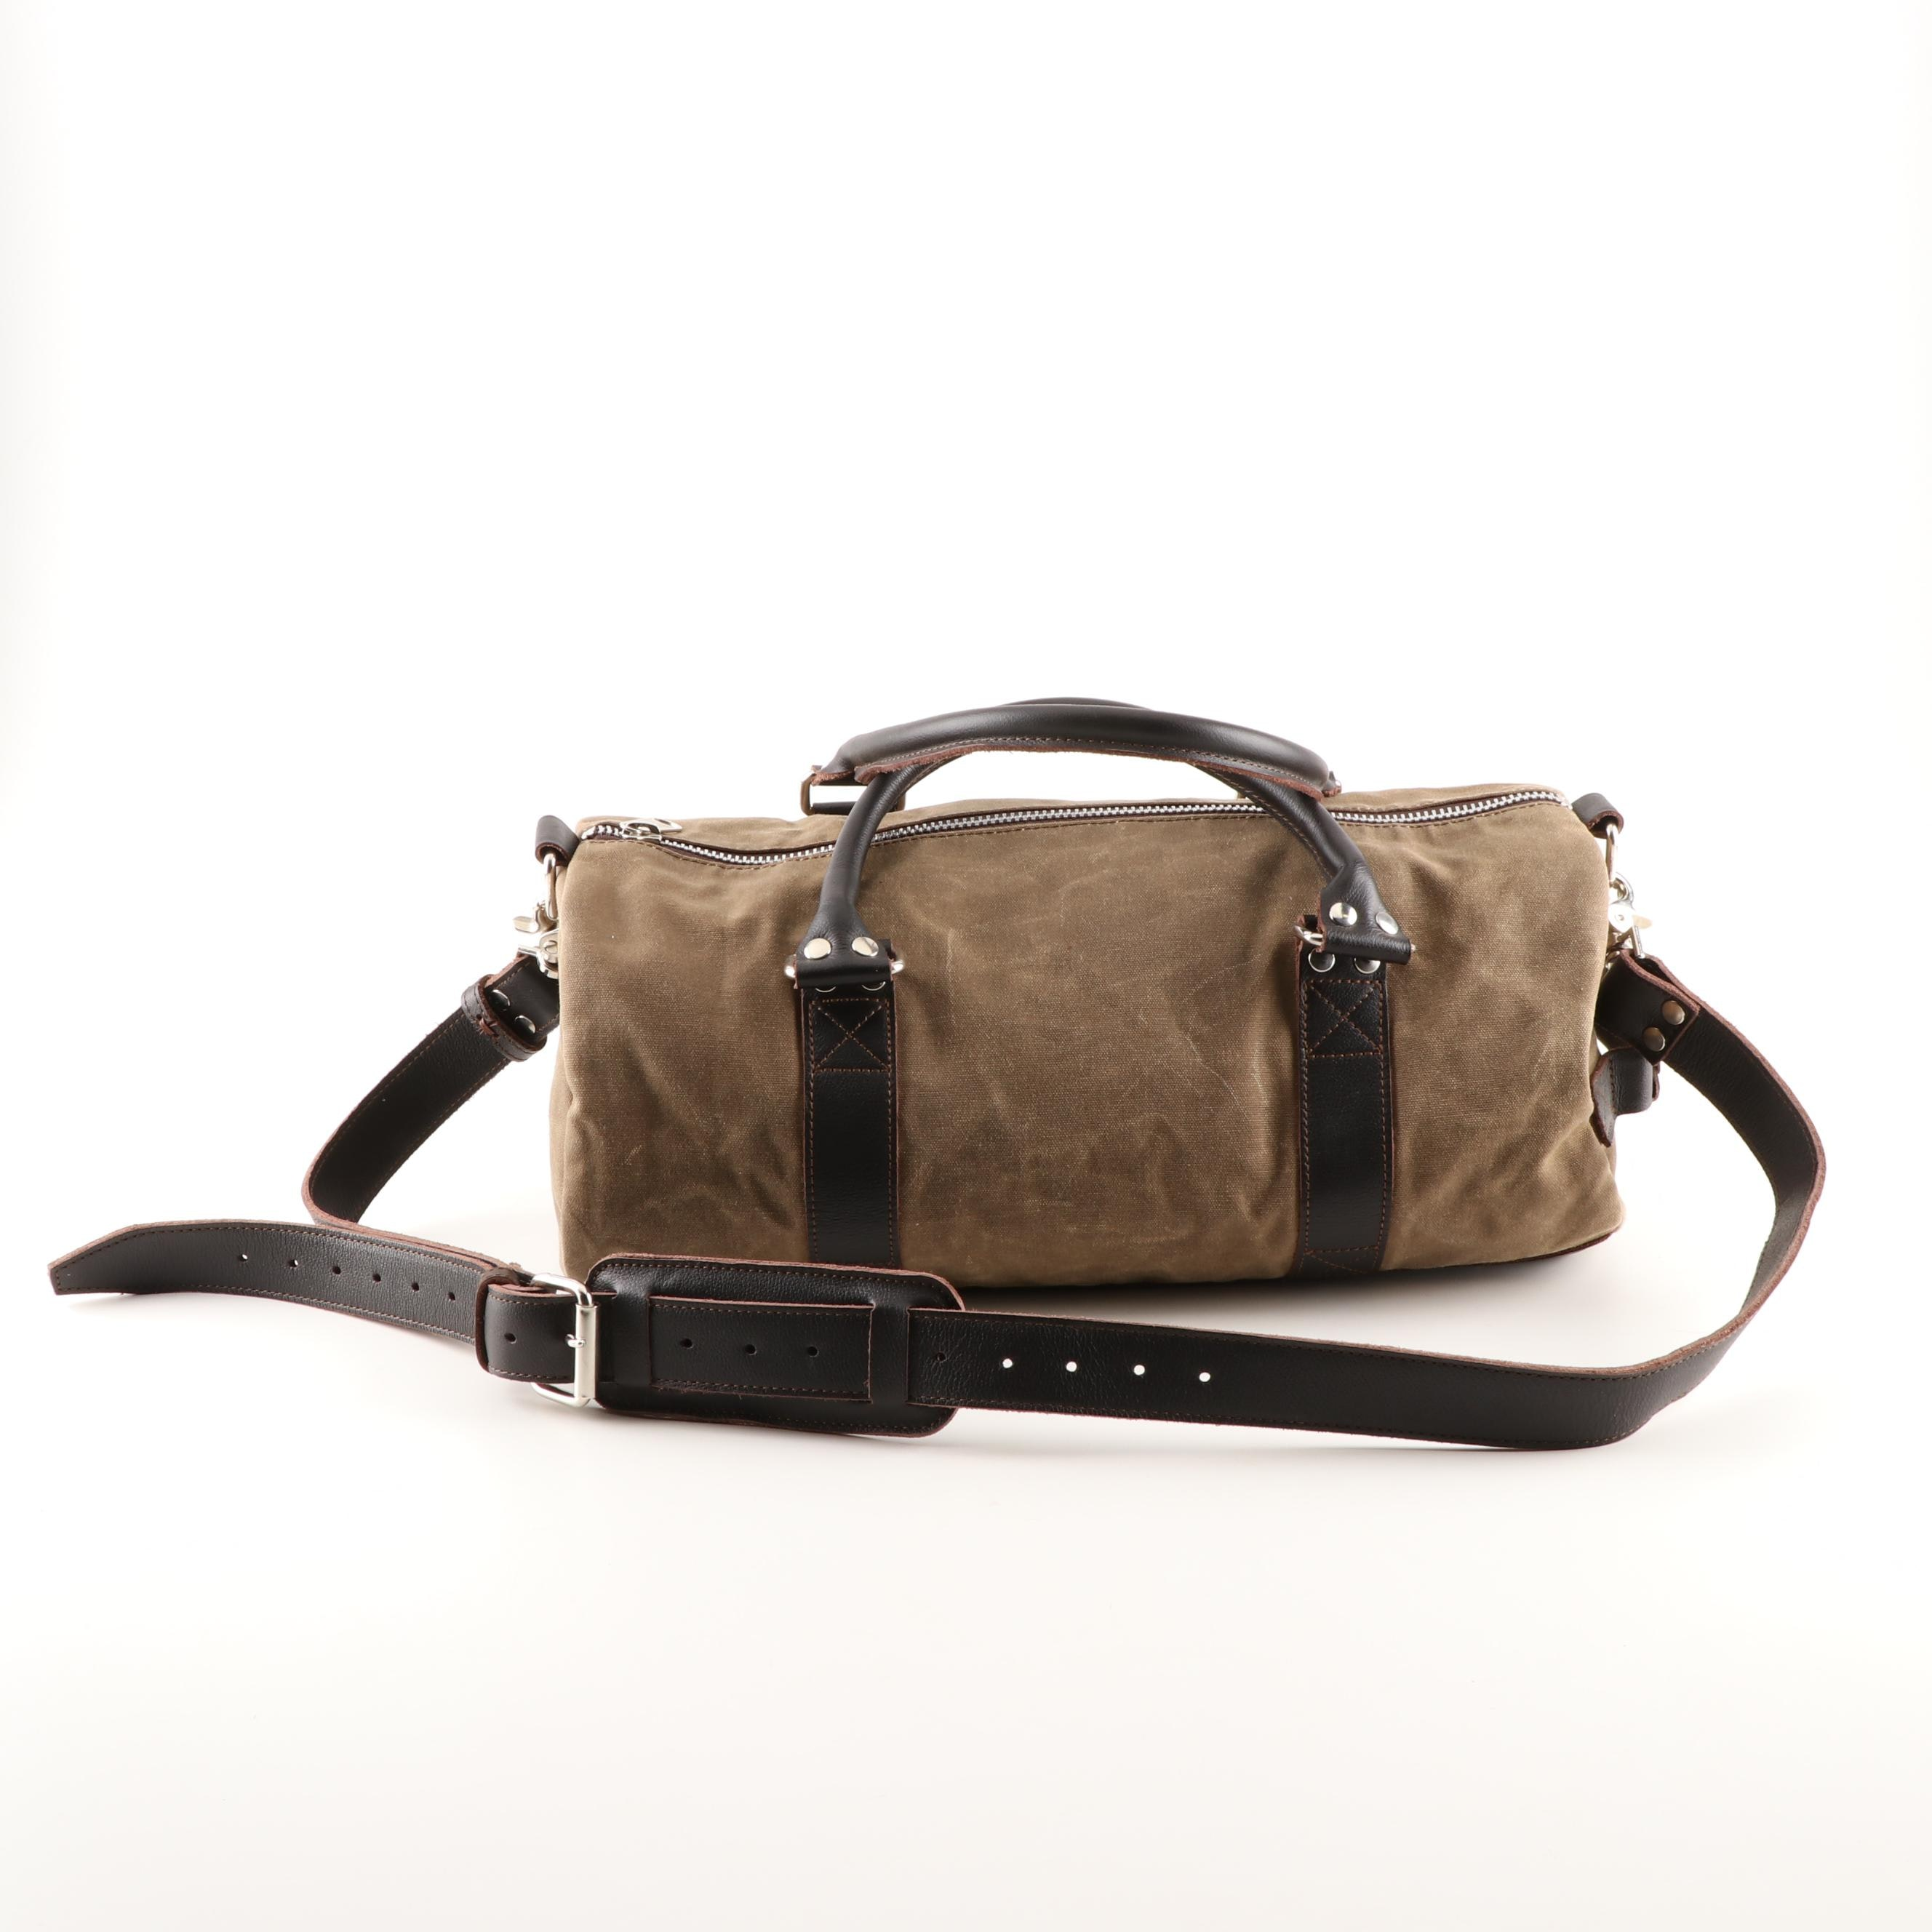 Buffalo Jackson Trading Co. Taupe Canvas and Brown Leather Small Duffle Bag